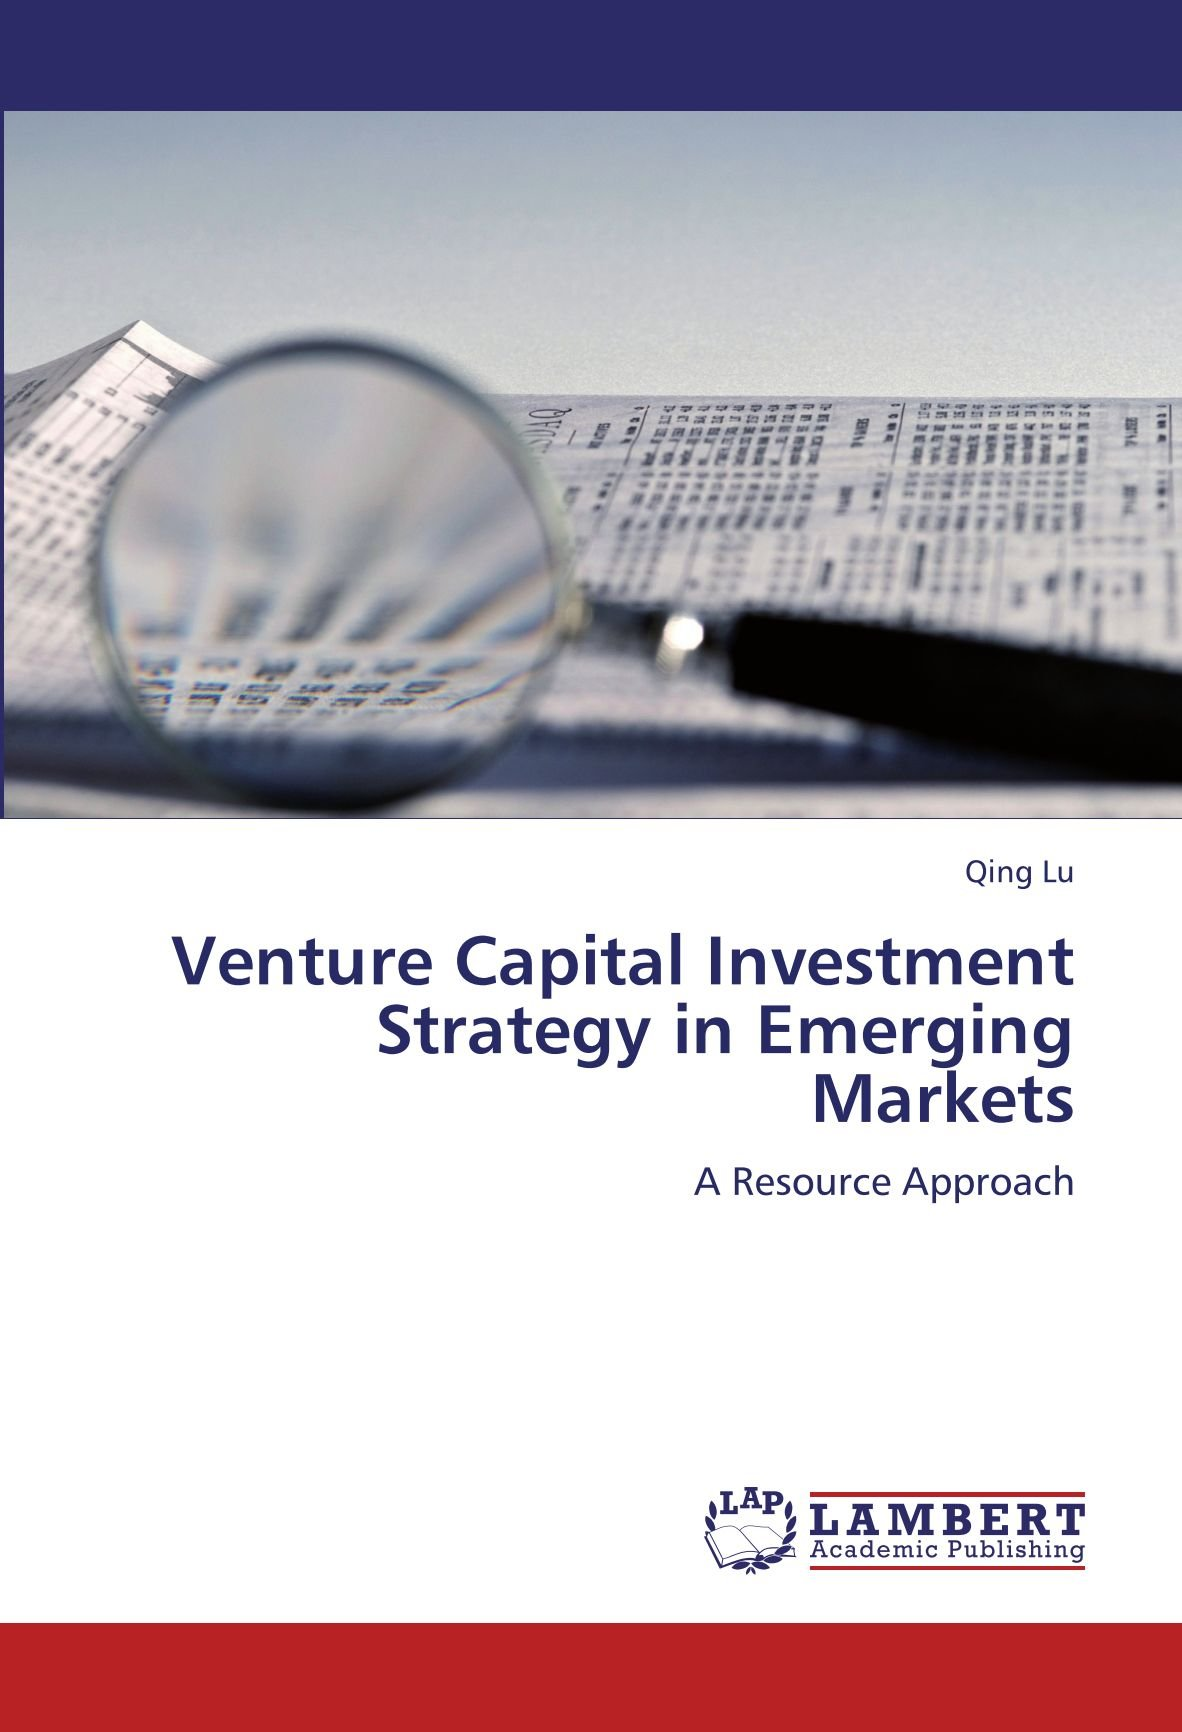 Venture Capital Investment Strategy in Emerging Markets: A Resource Approach